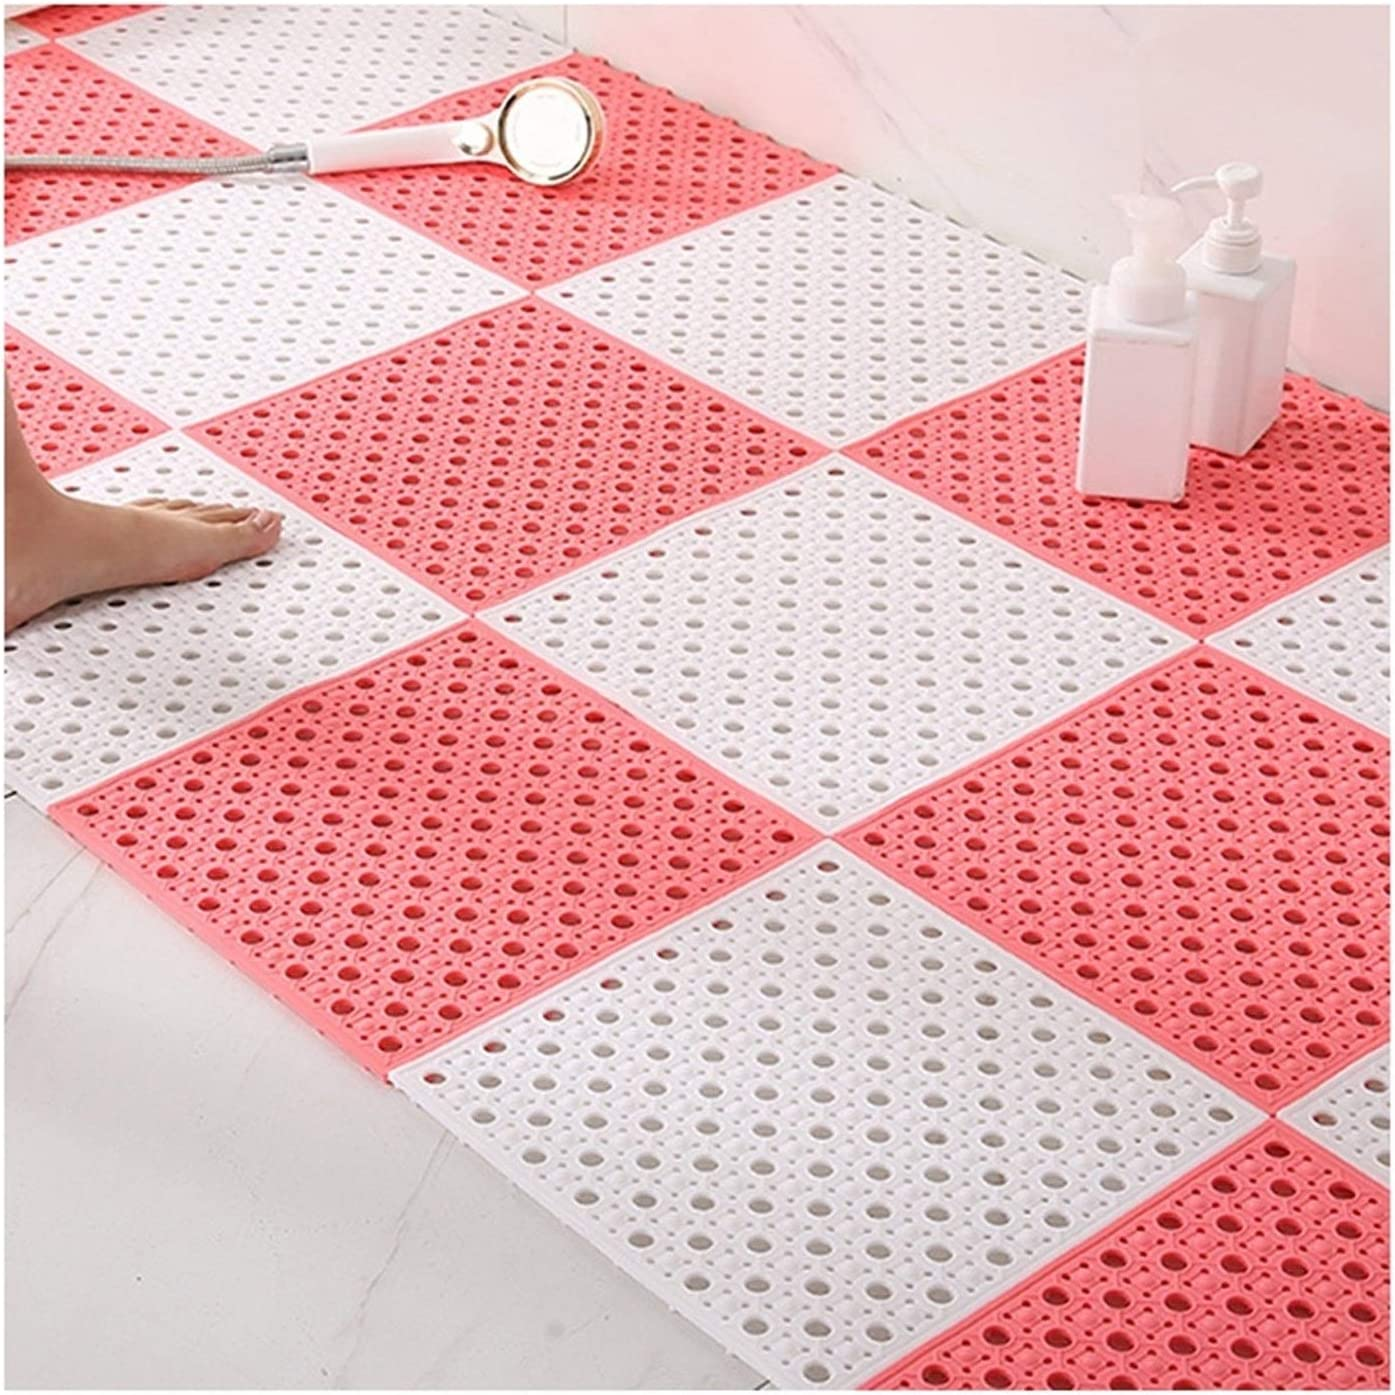 Shower Mats Environmental Protection PVC with Suction Cup Non-Sl